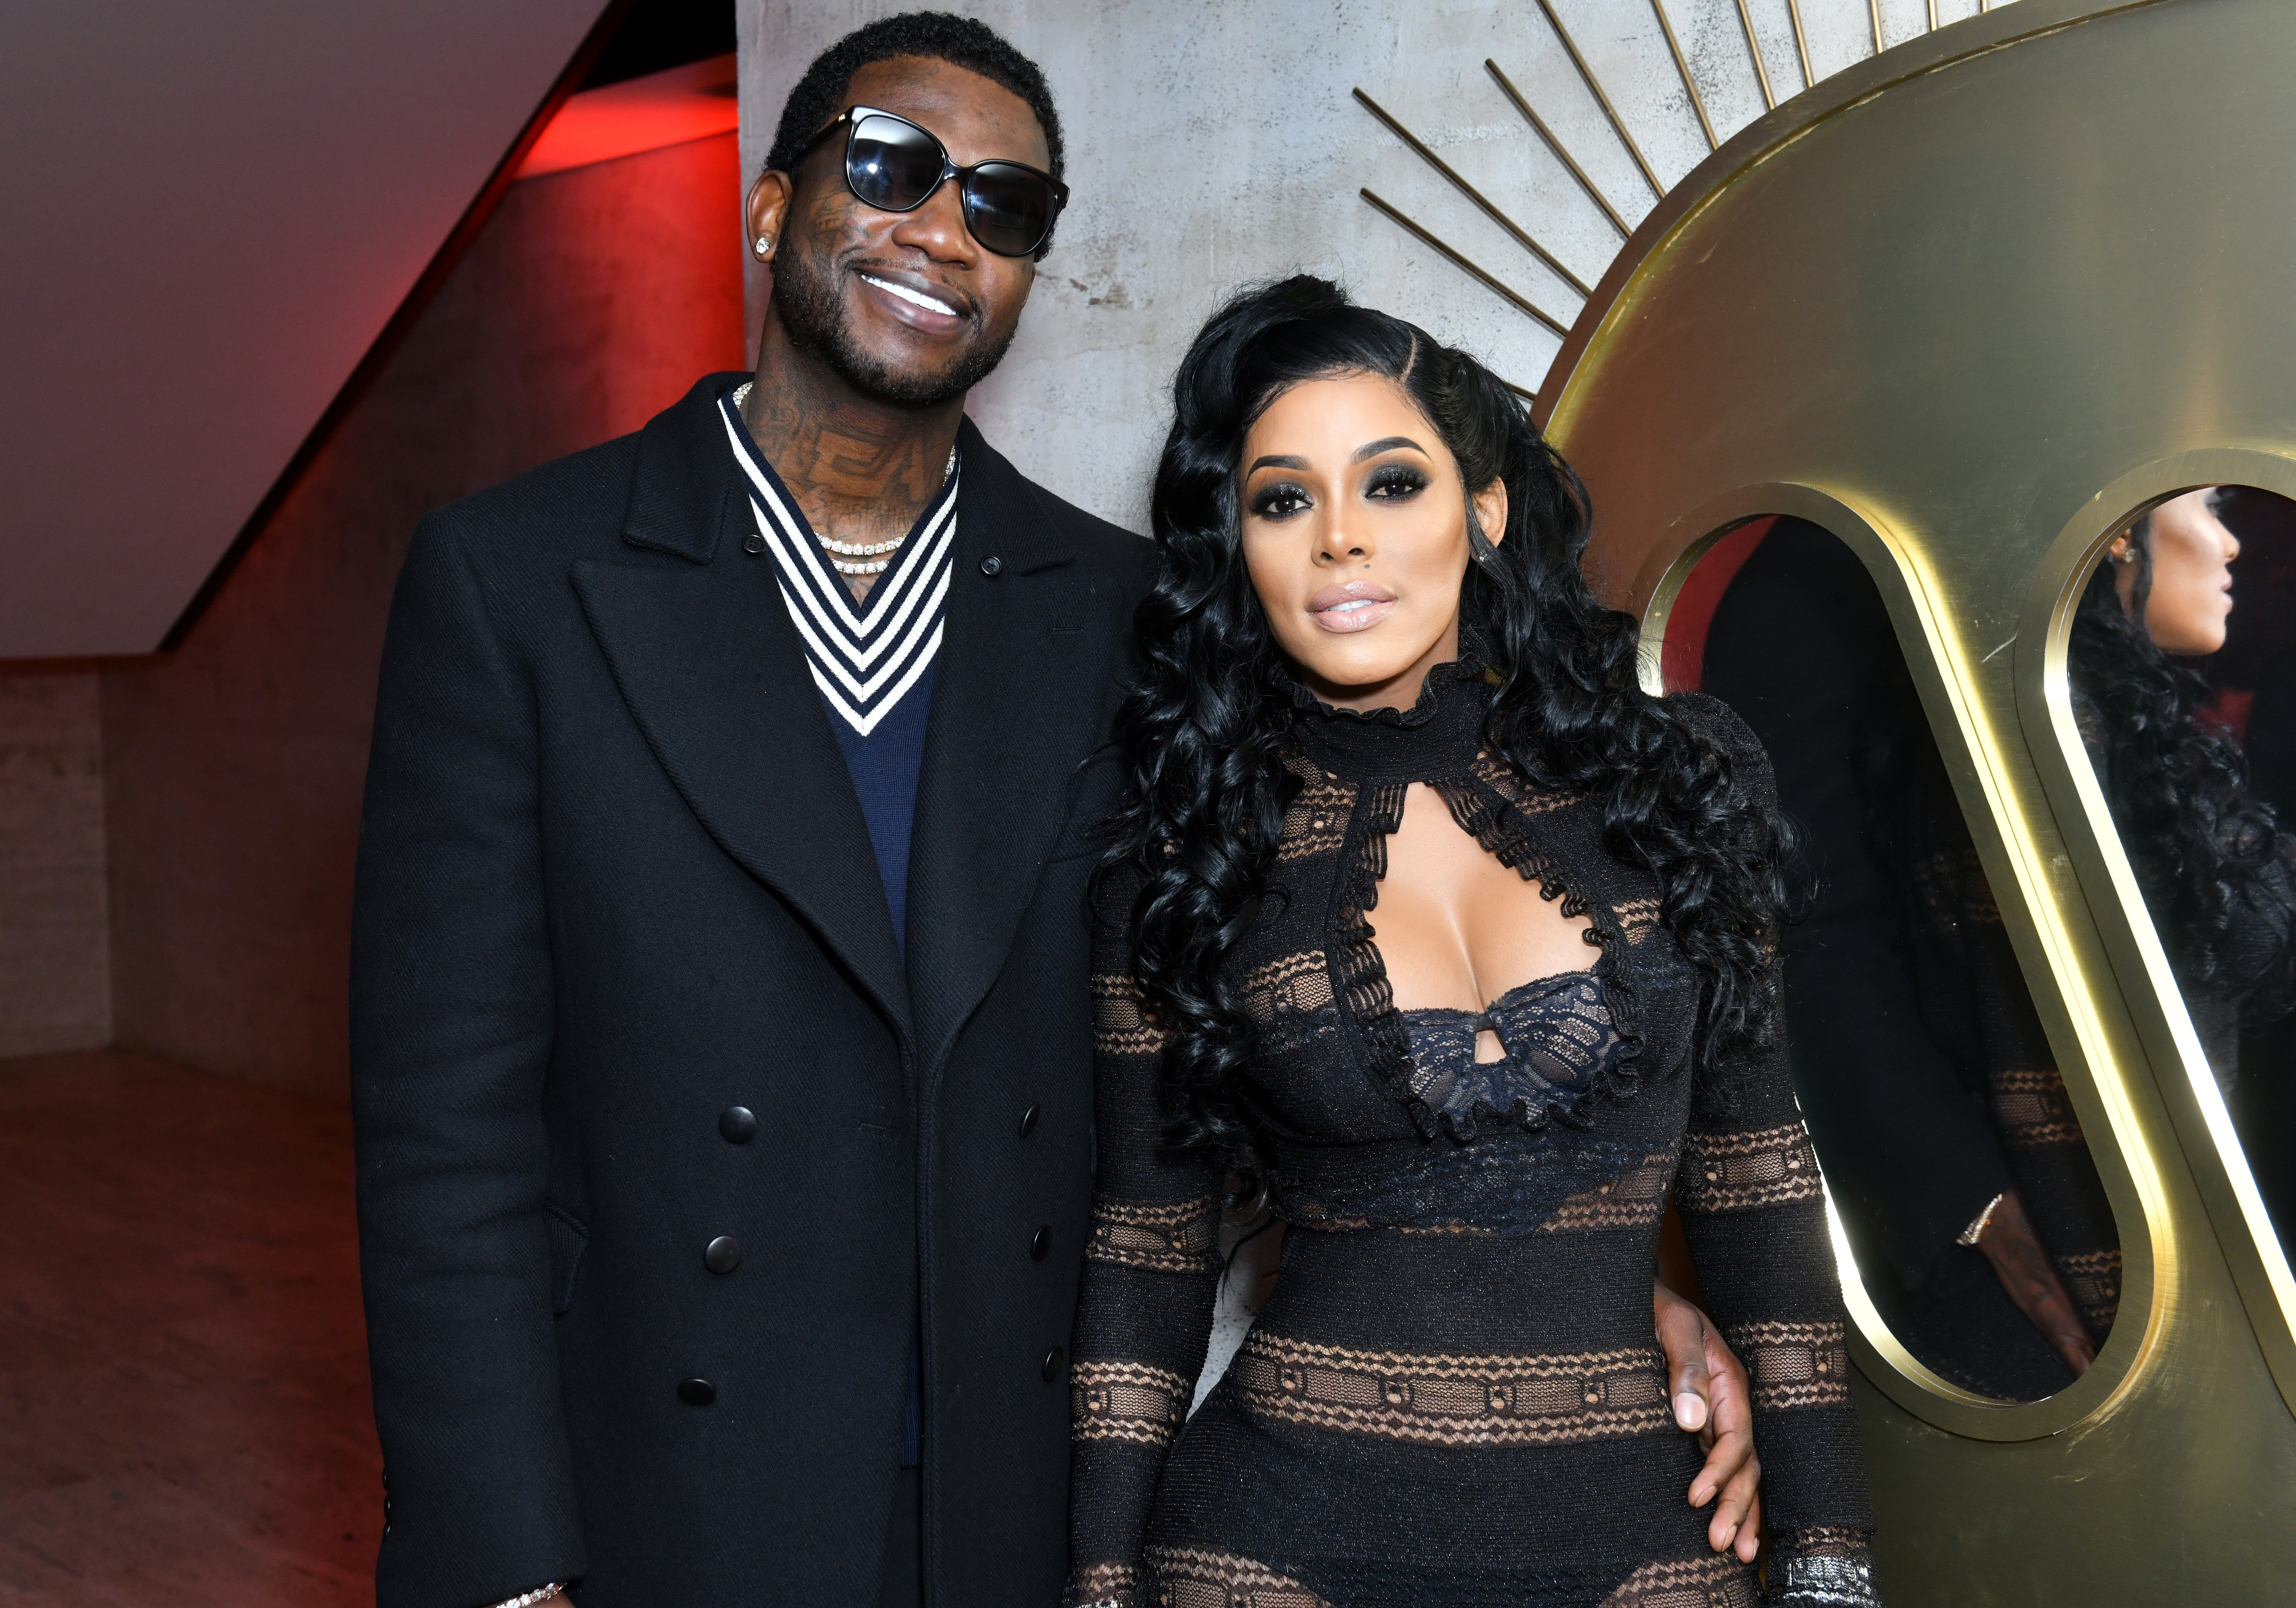 Gucci Mane and Keyshia Ka'oir at the Warner Music Group Pre-Grammy Party on January 25, 2018 in New York City. | Source: Getty Images